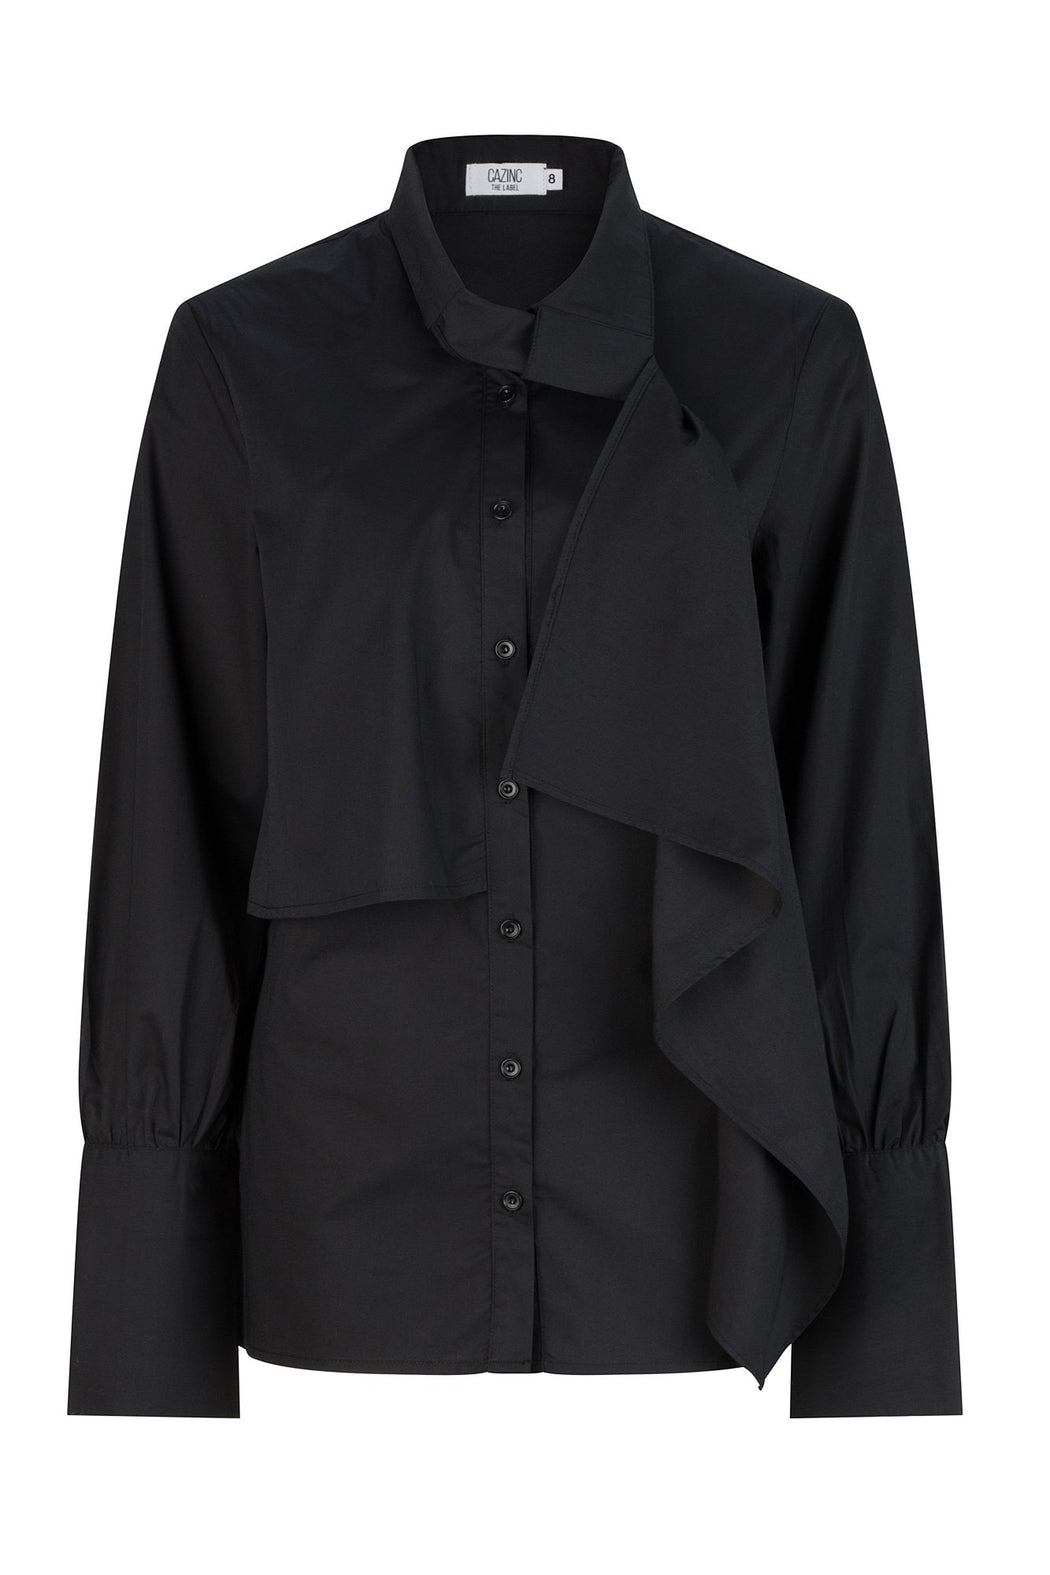 Luna Shirt - Black